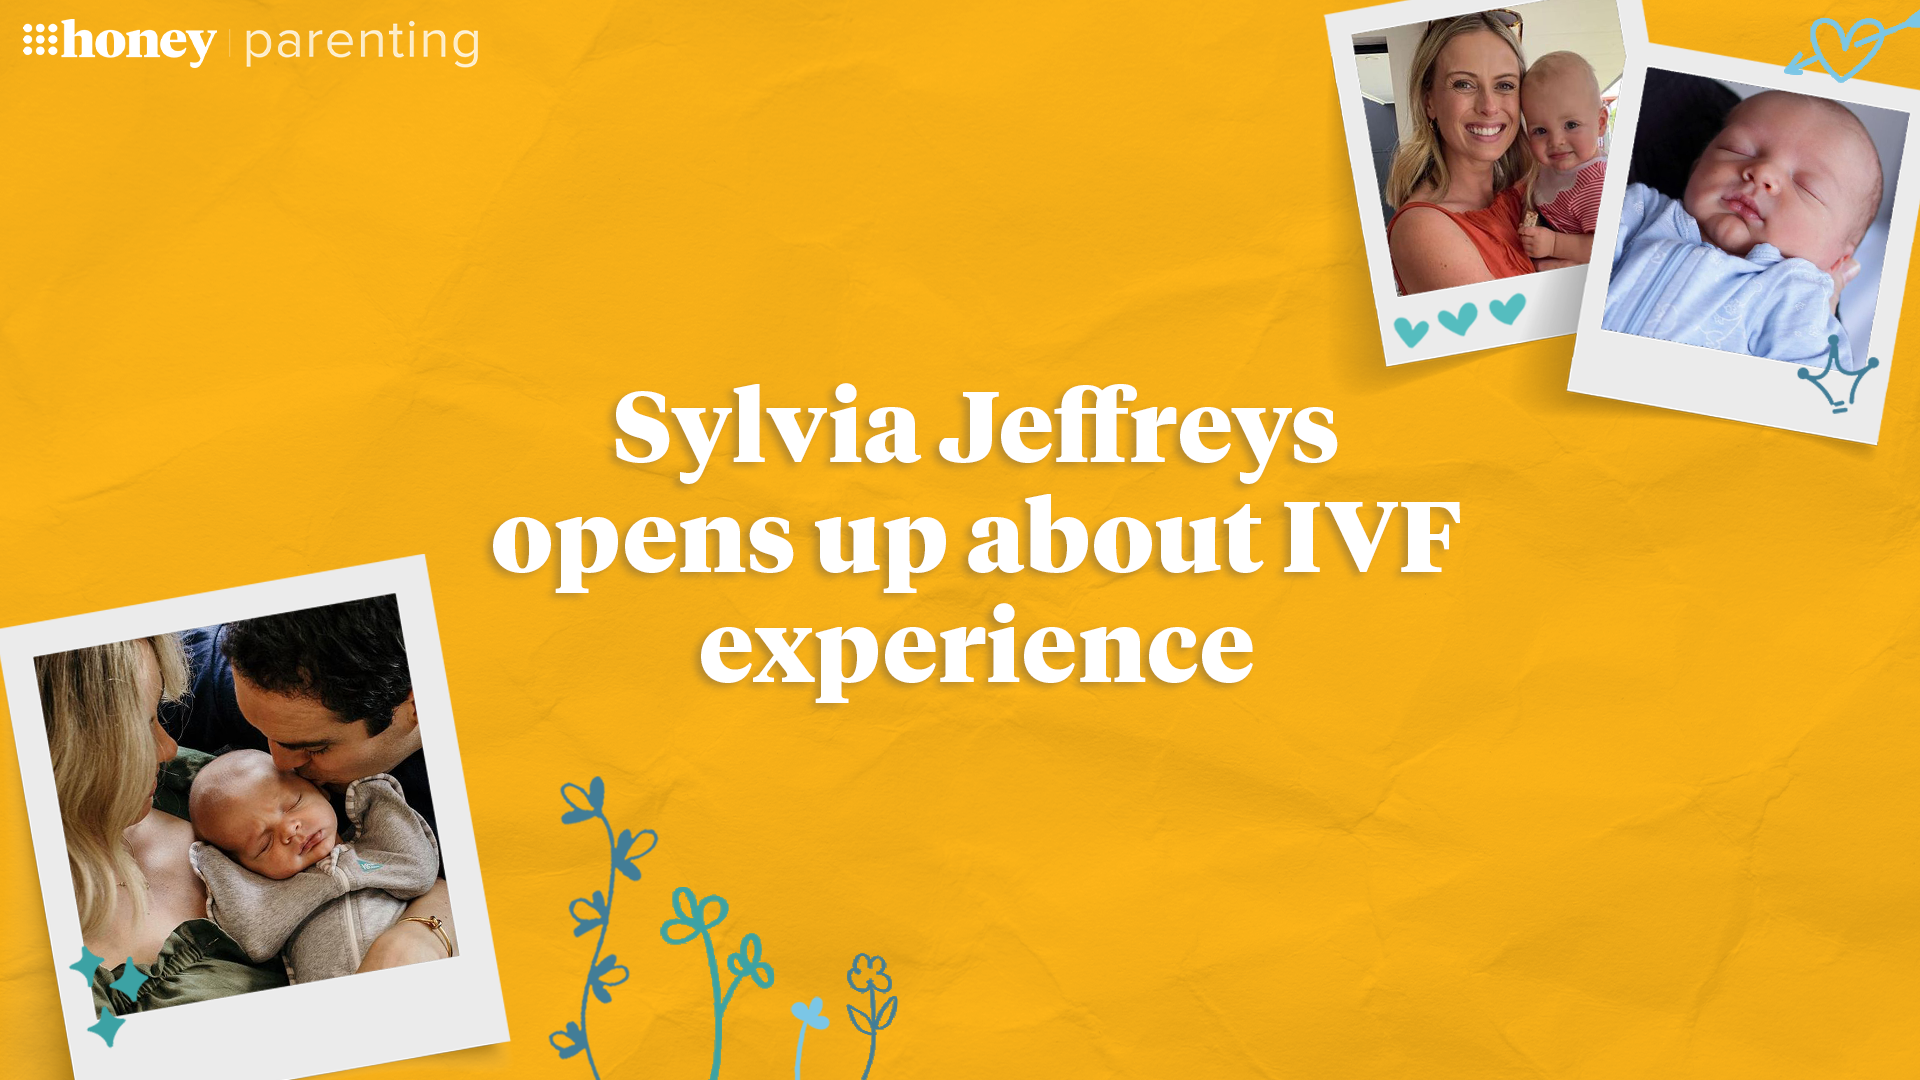 Sylvia Jeffreys opens up about IVF experience